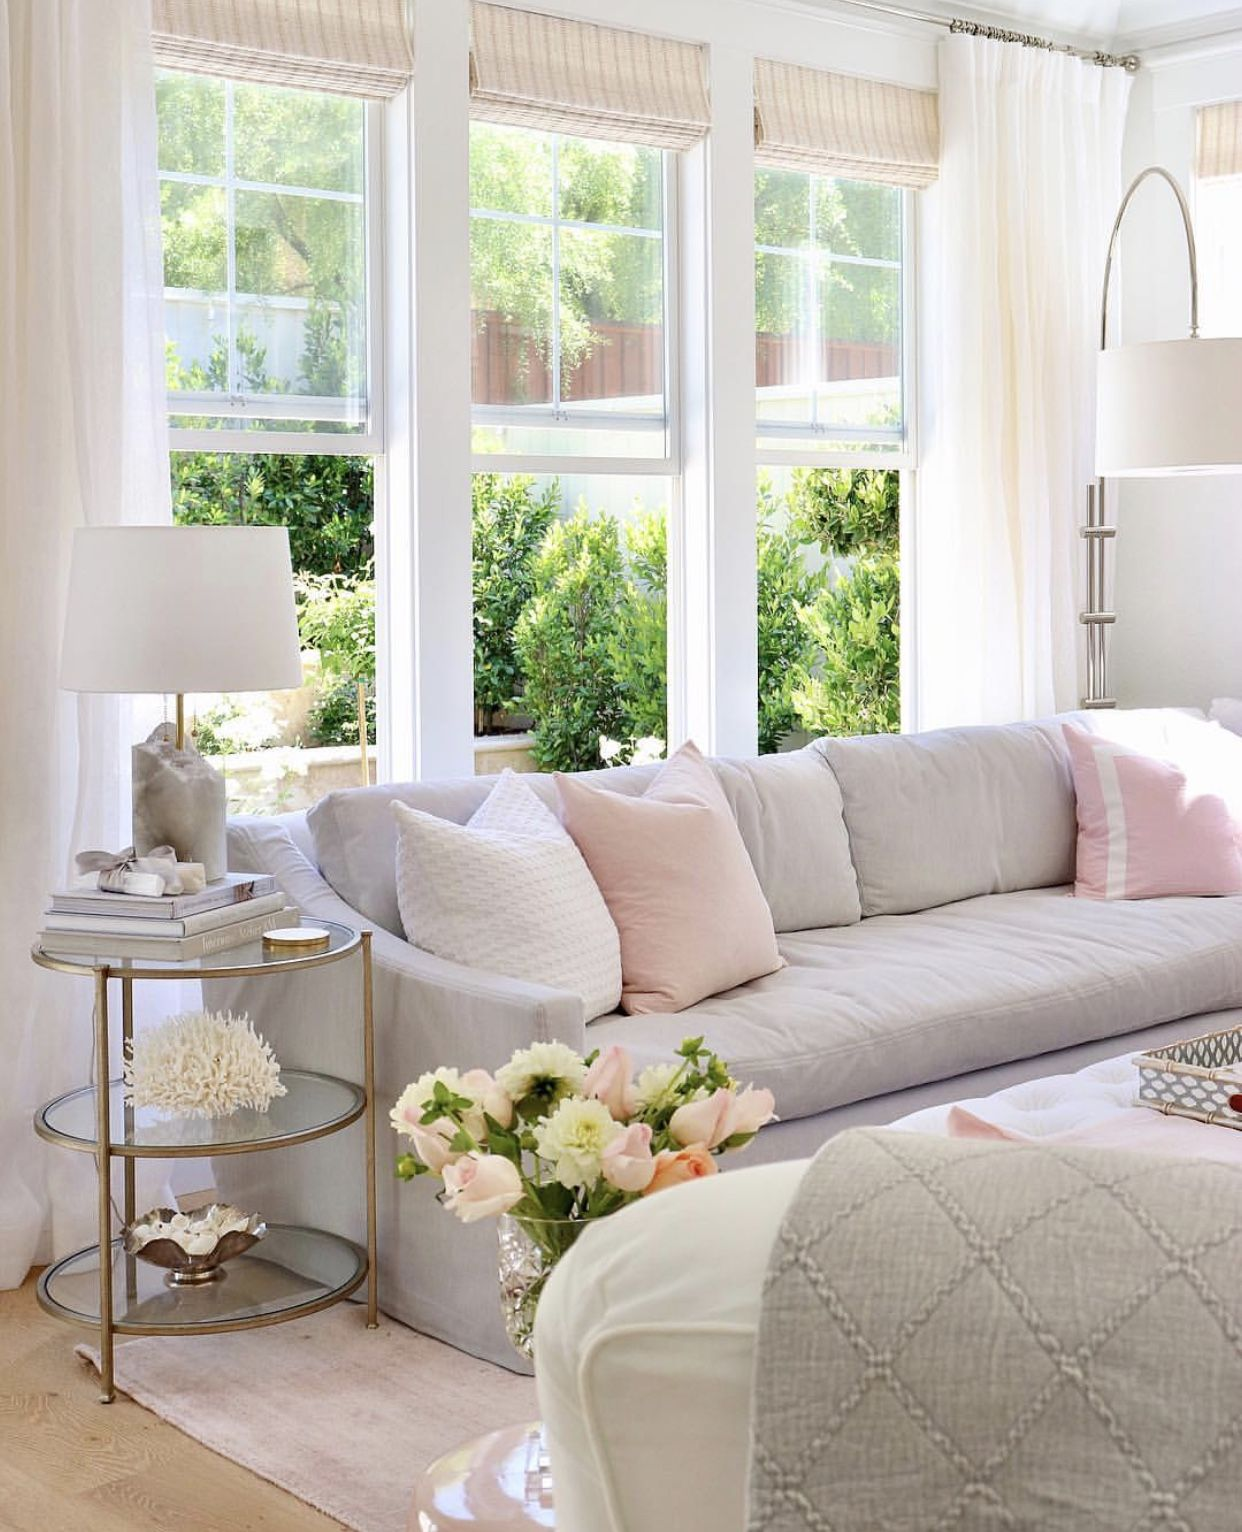 Feminine And Classy Living Room Classy Living Room Shabby Chic Living Room Shabby Chic Room